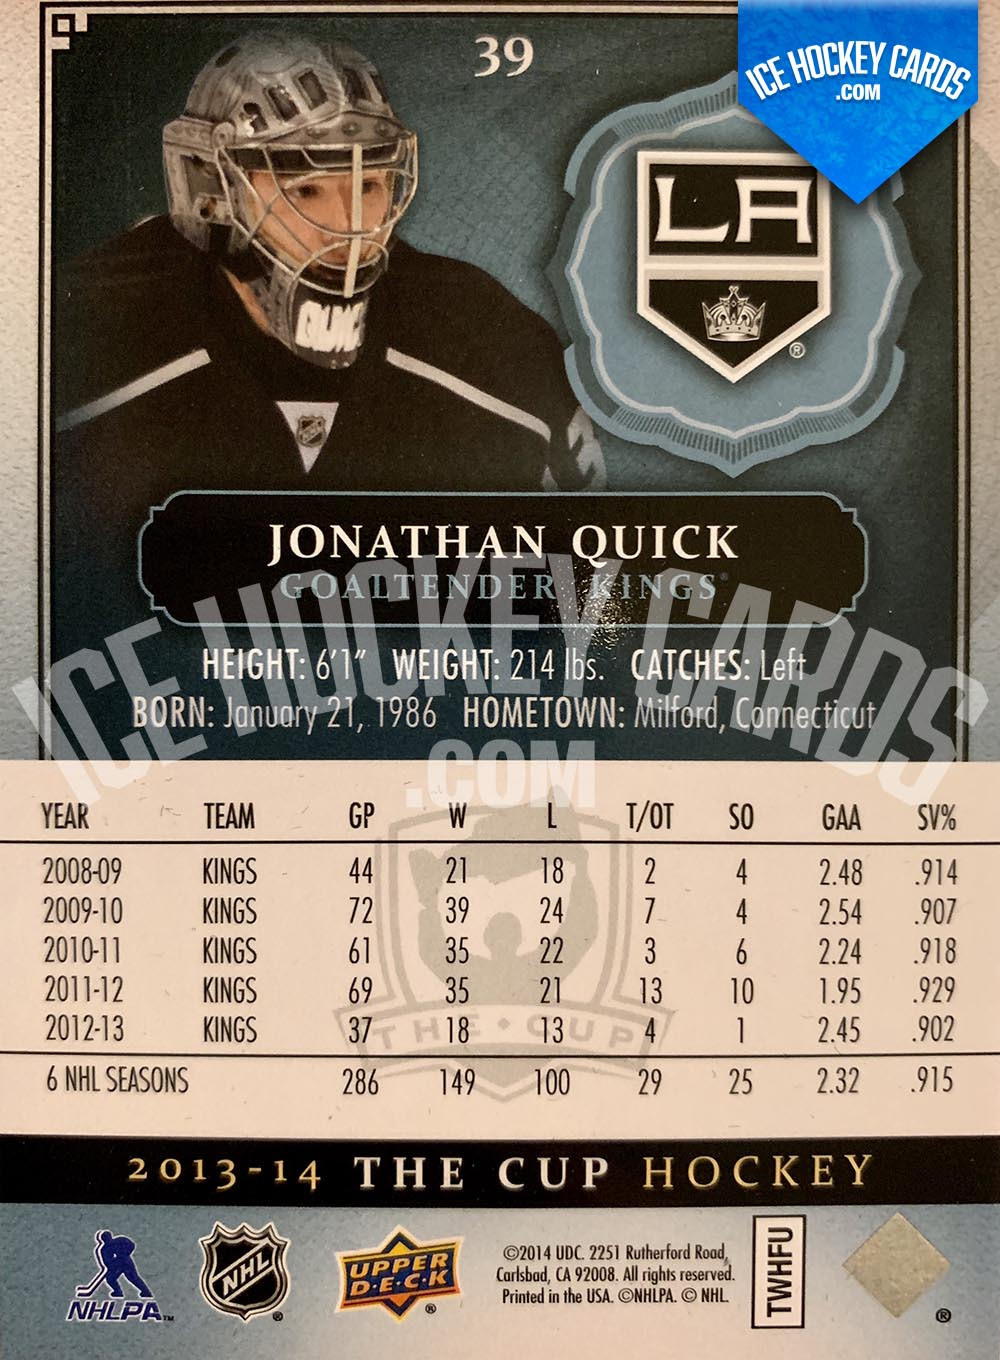 Upper Deck - The Cup 2013-14 - Jonathan Quick Gold Base Card # to 25 back